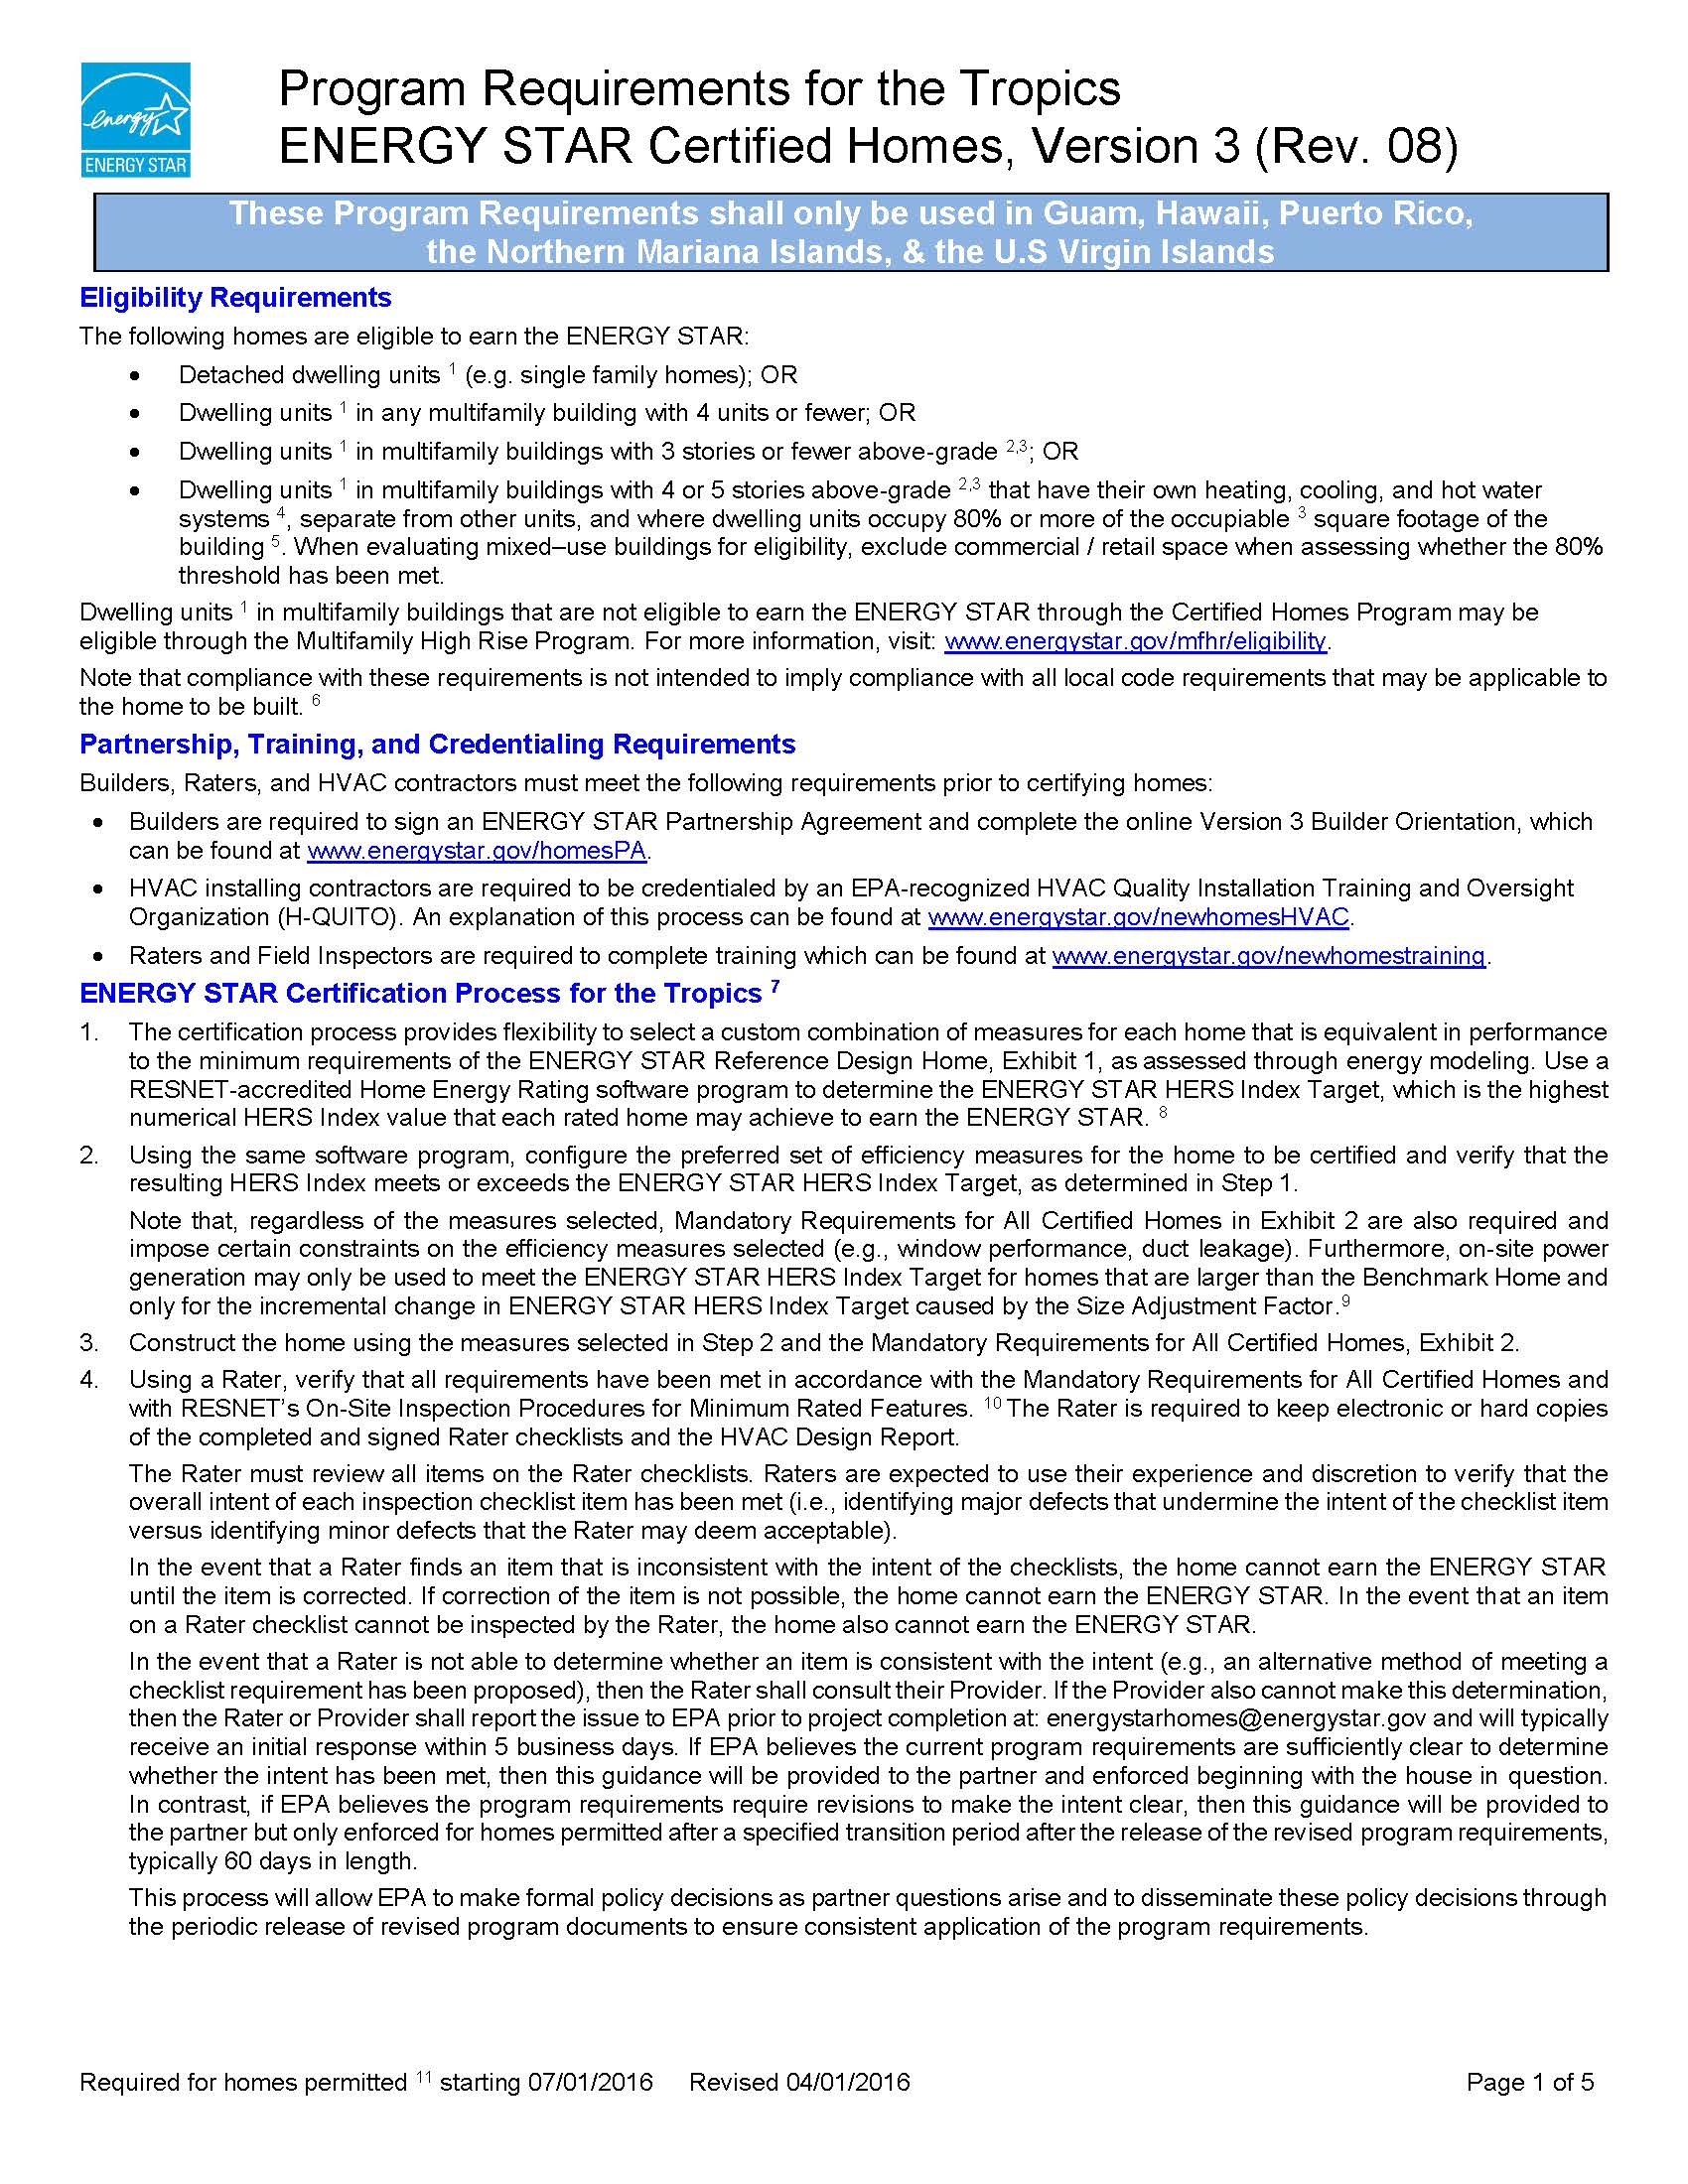 Page 1 of Regional ENERGY STAR Homes Version 3 Requirements for the Tropics